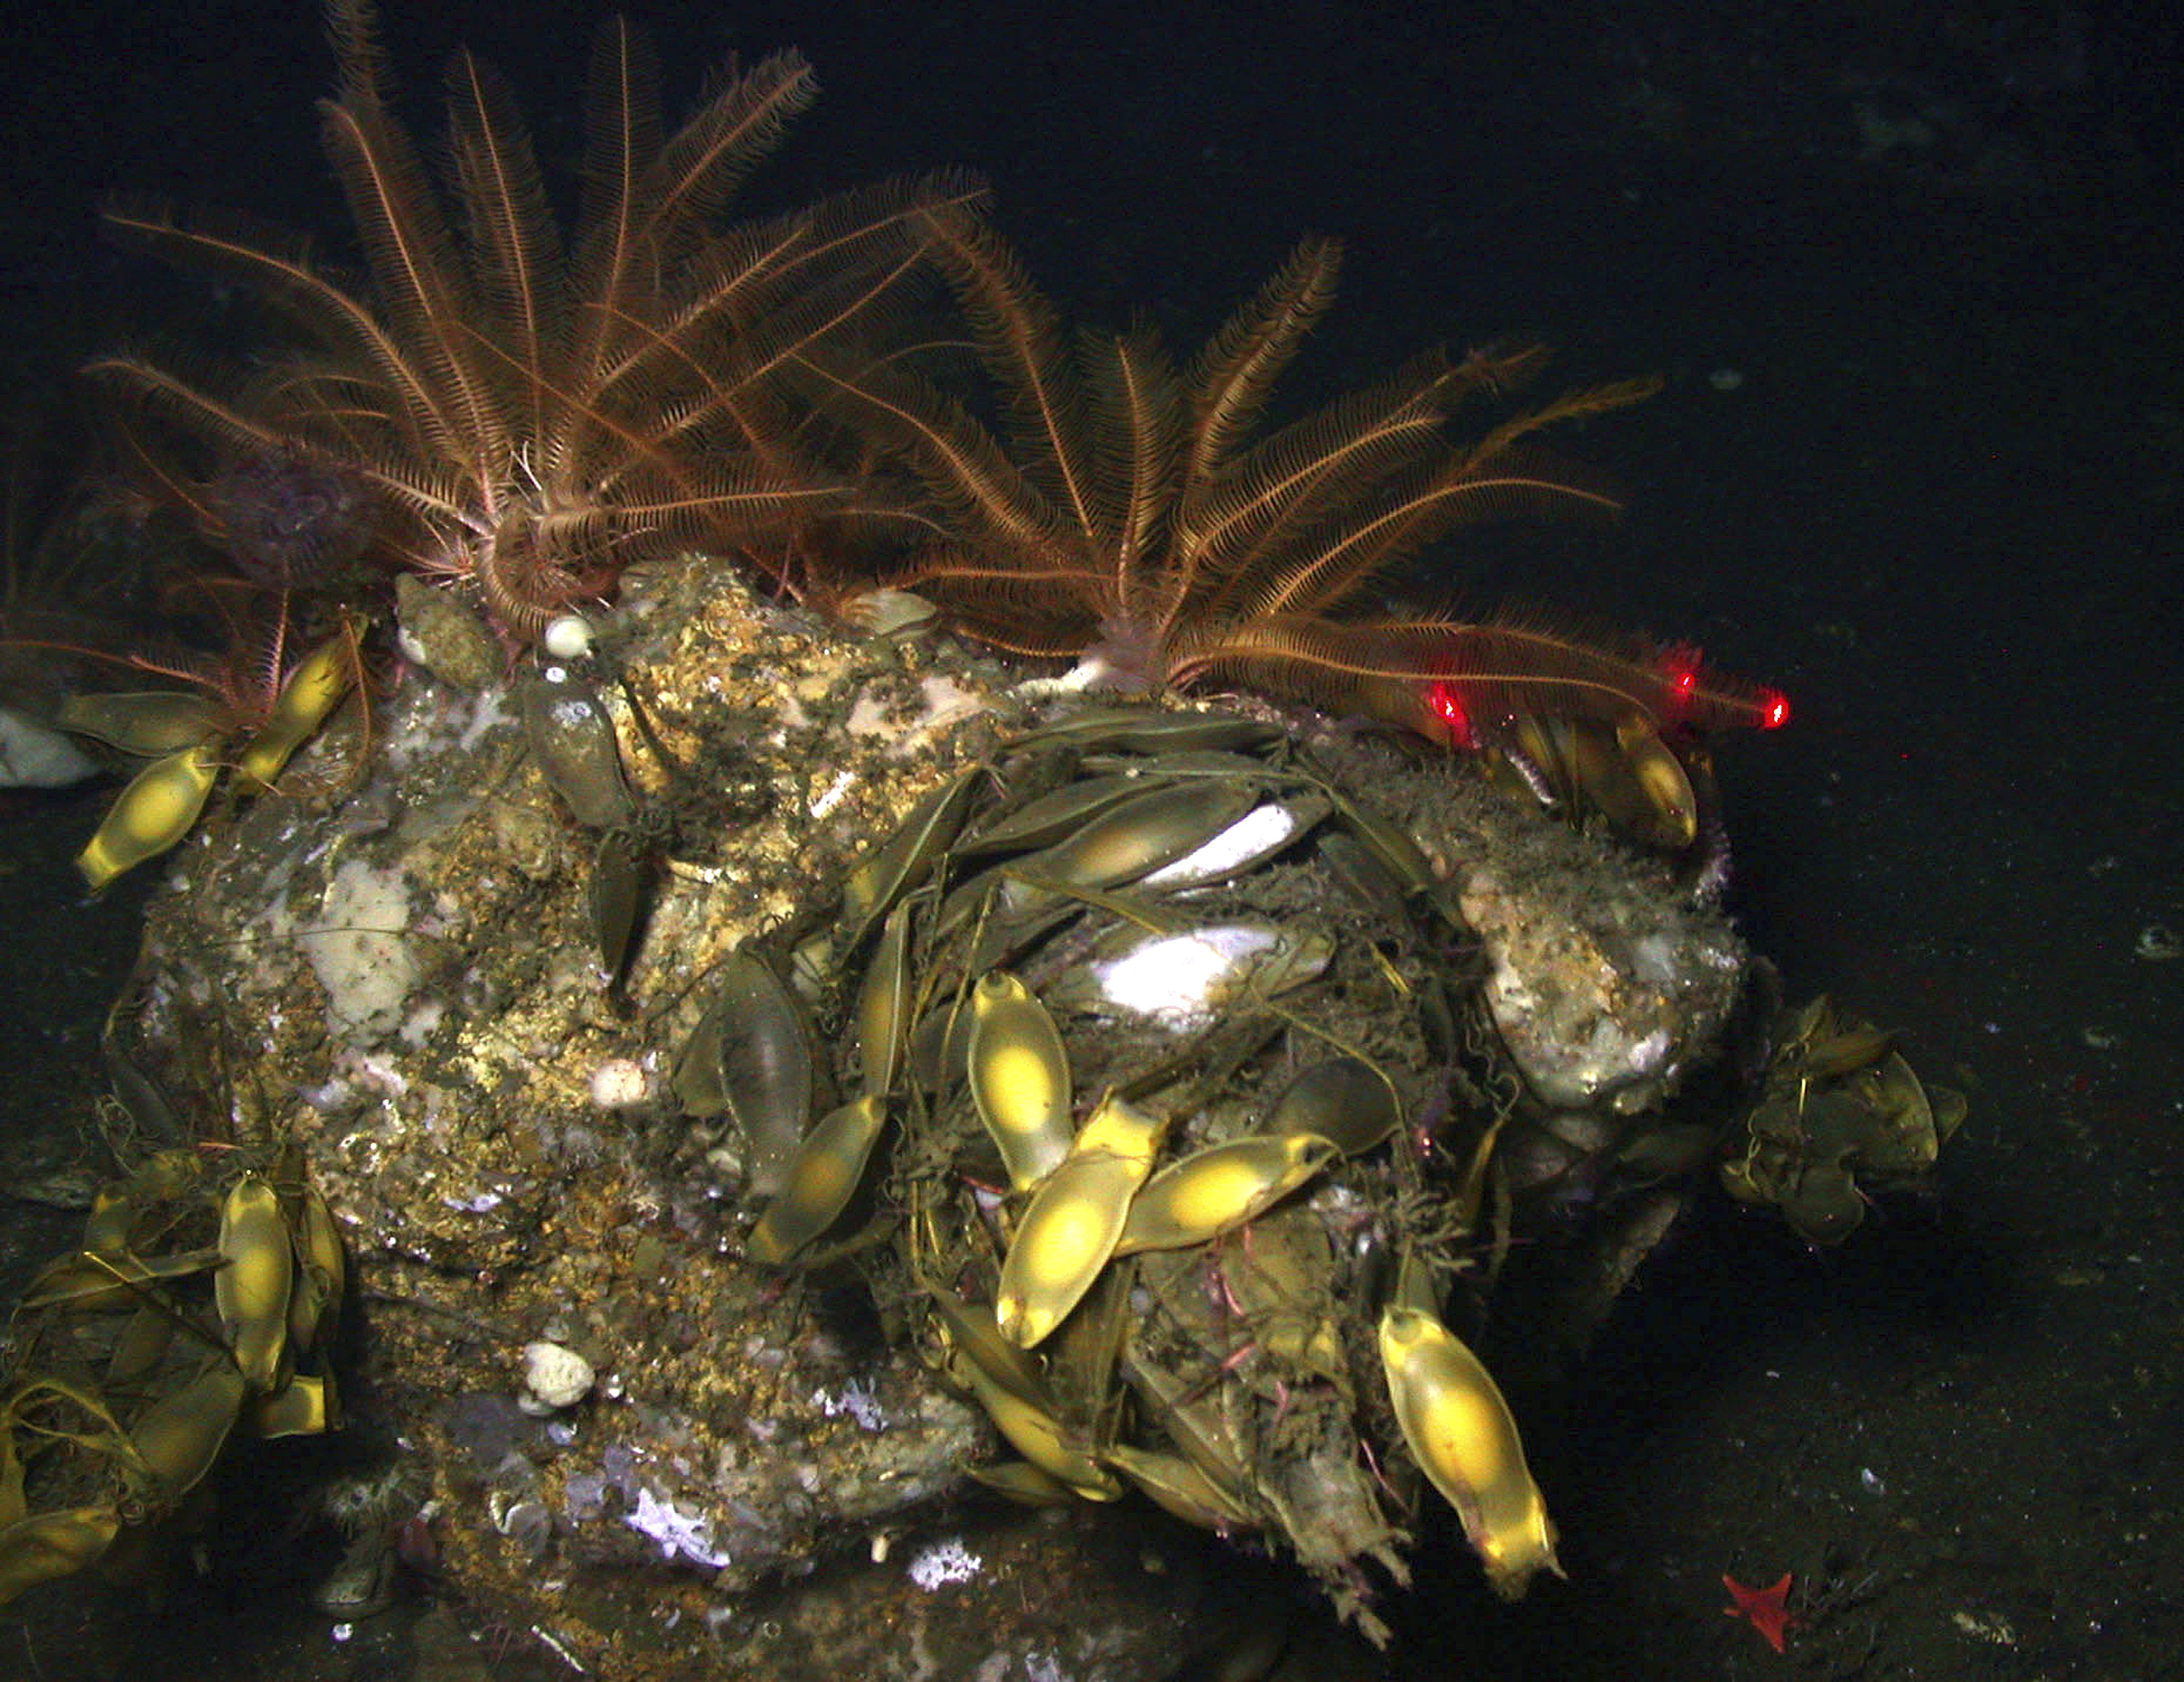 Federal scientists discover new coral species in underwater canyons off California's coast